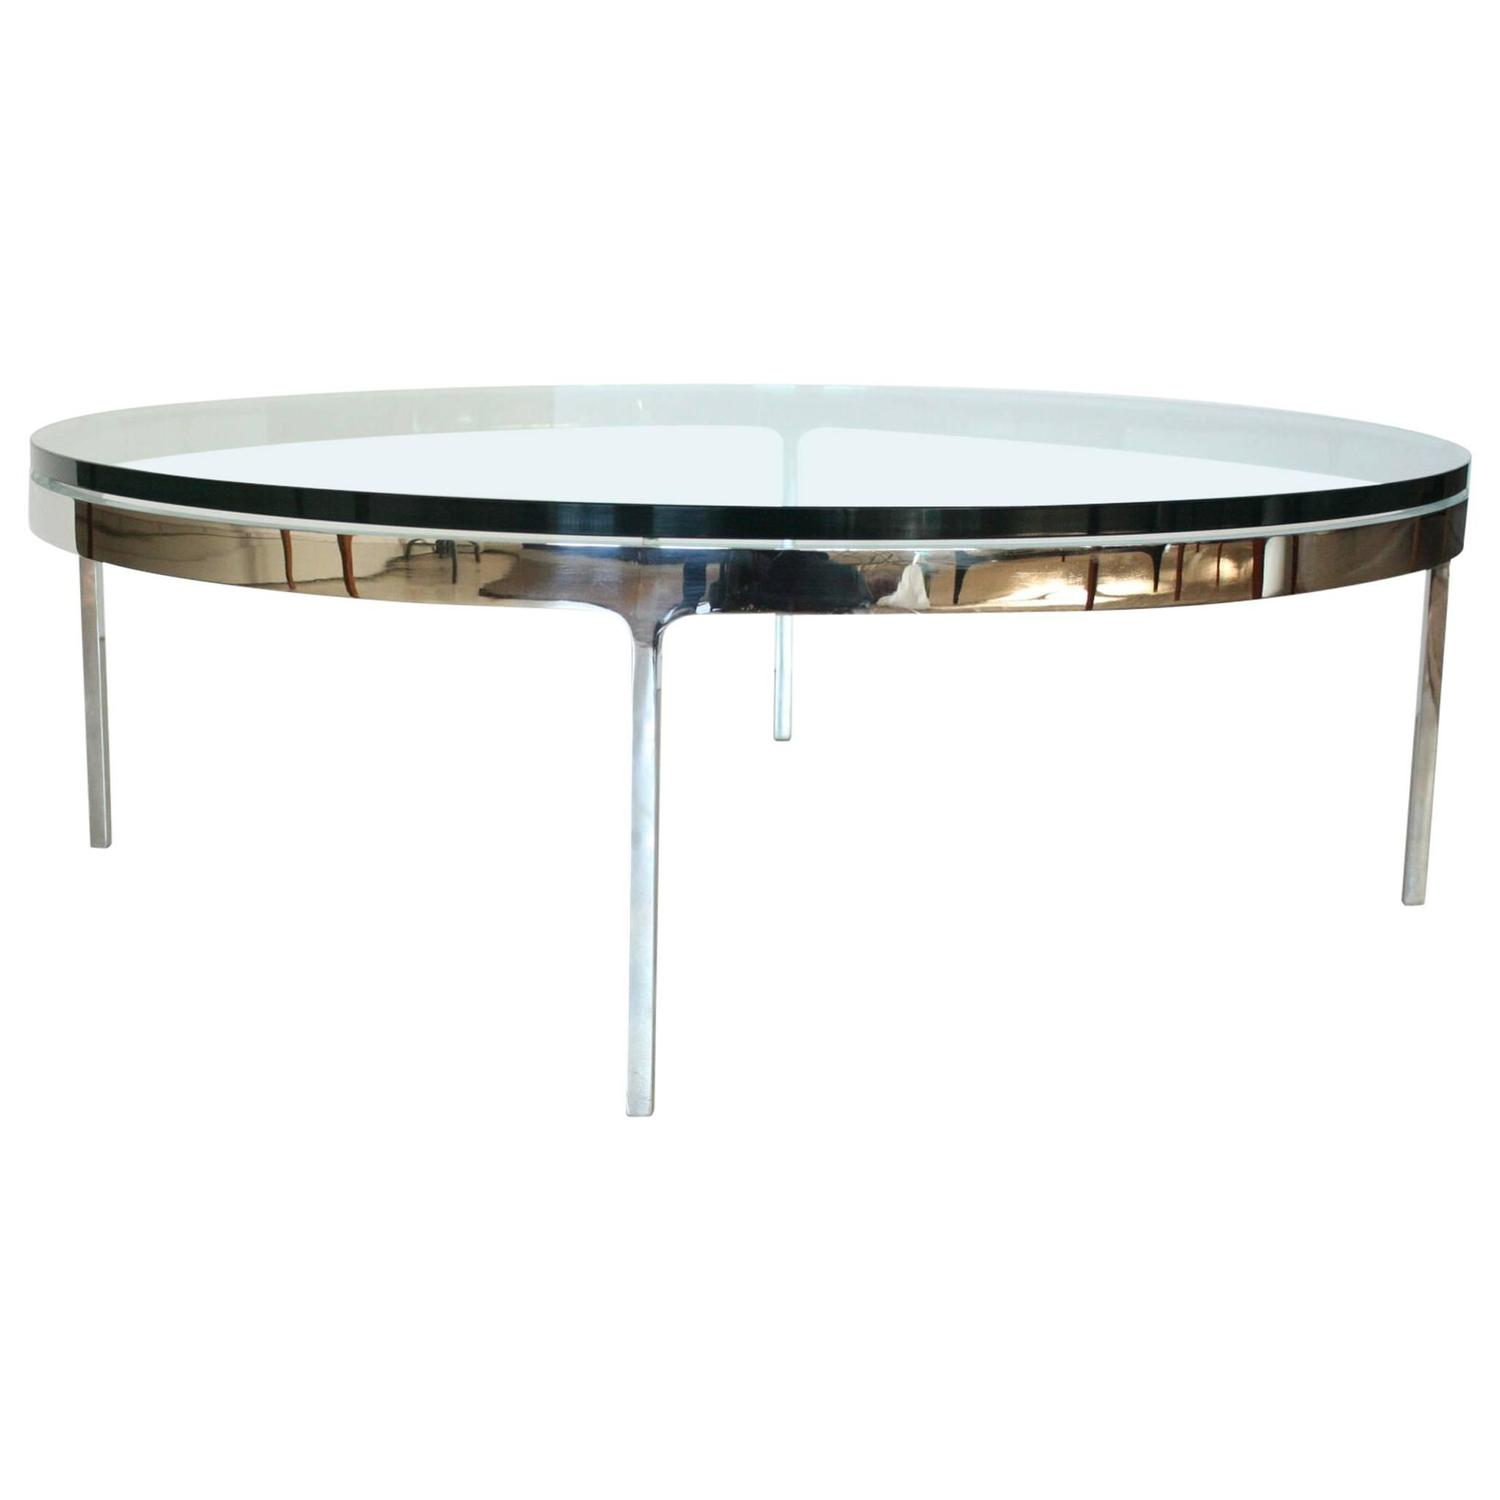 Marble Coffee Table Furniture Village: Nicos Zographos Coffee Table For Sale At 1stdibs